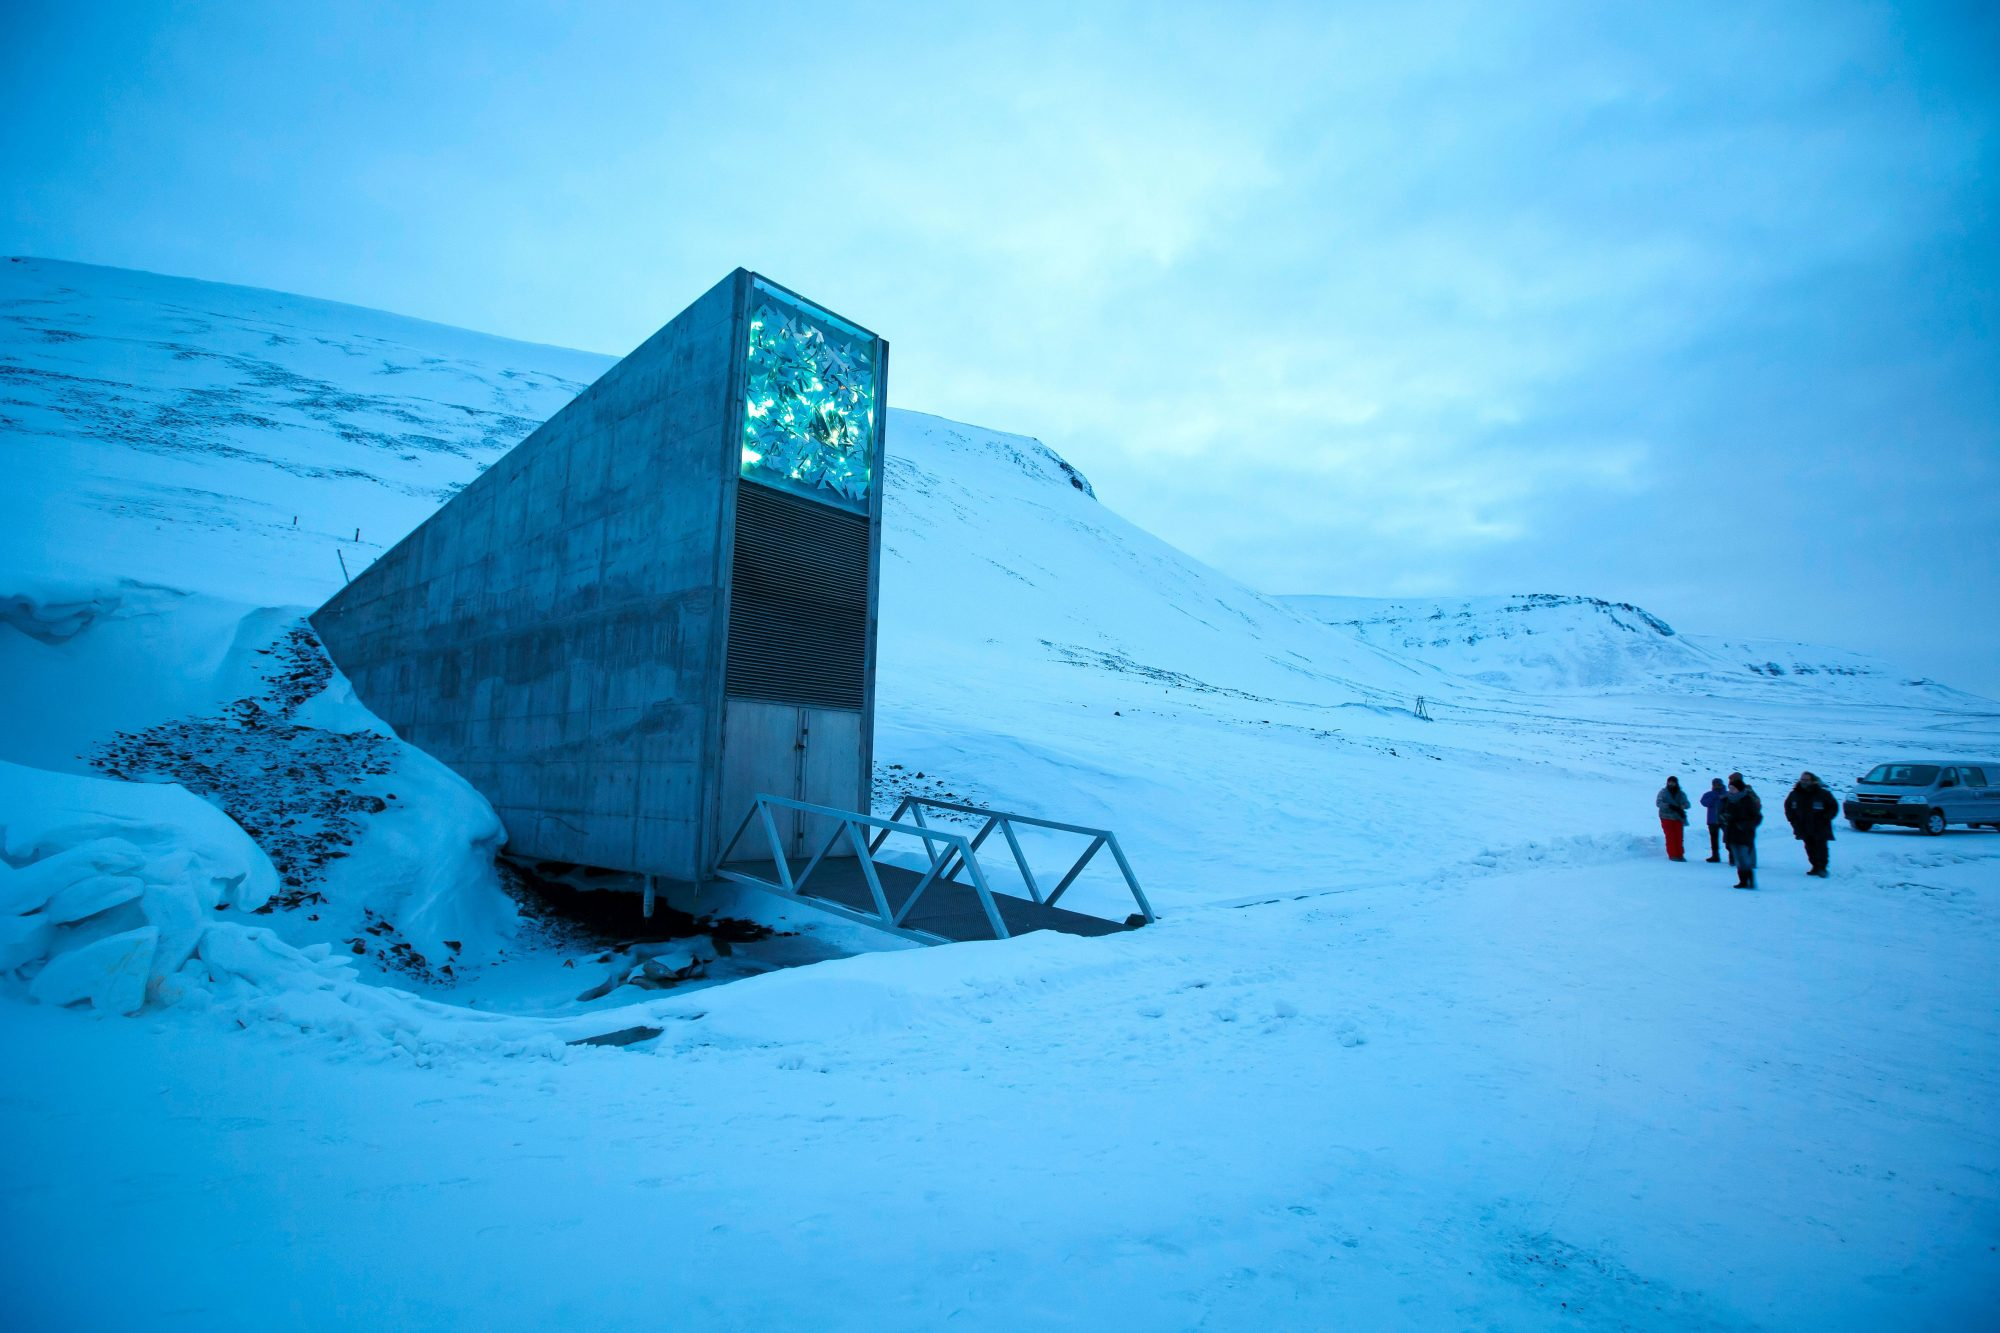 A general view of the entrance of the international gene bank Svalbard Global Seed Vault (SGSV), outside Longyearbyen on Spitsbergen, Norway, on February 29, 2016.